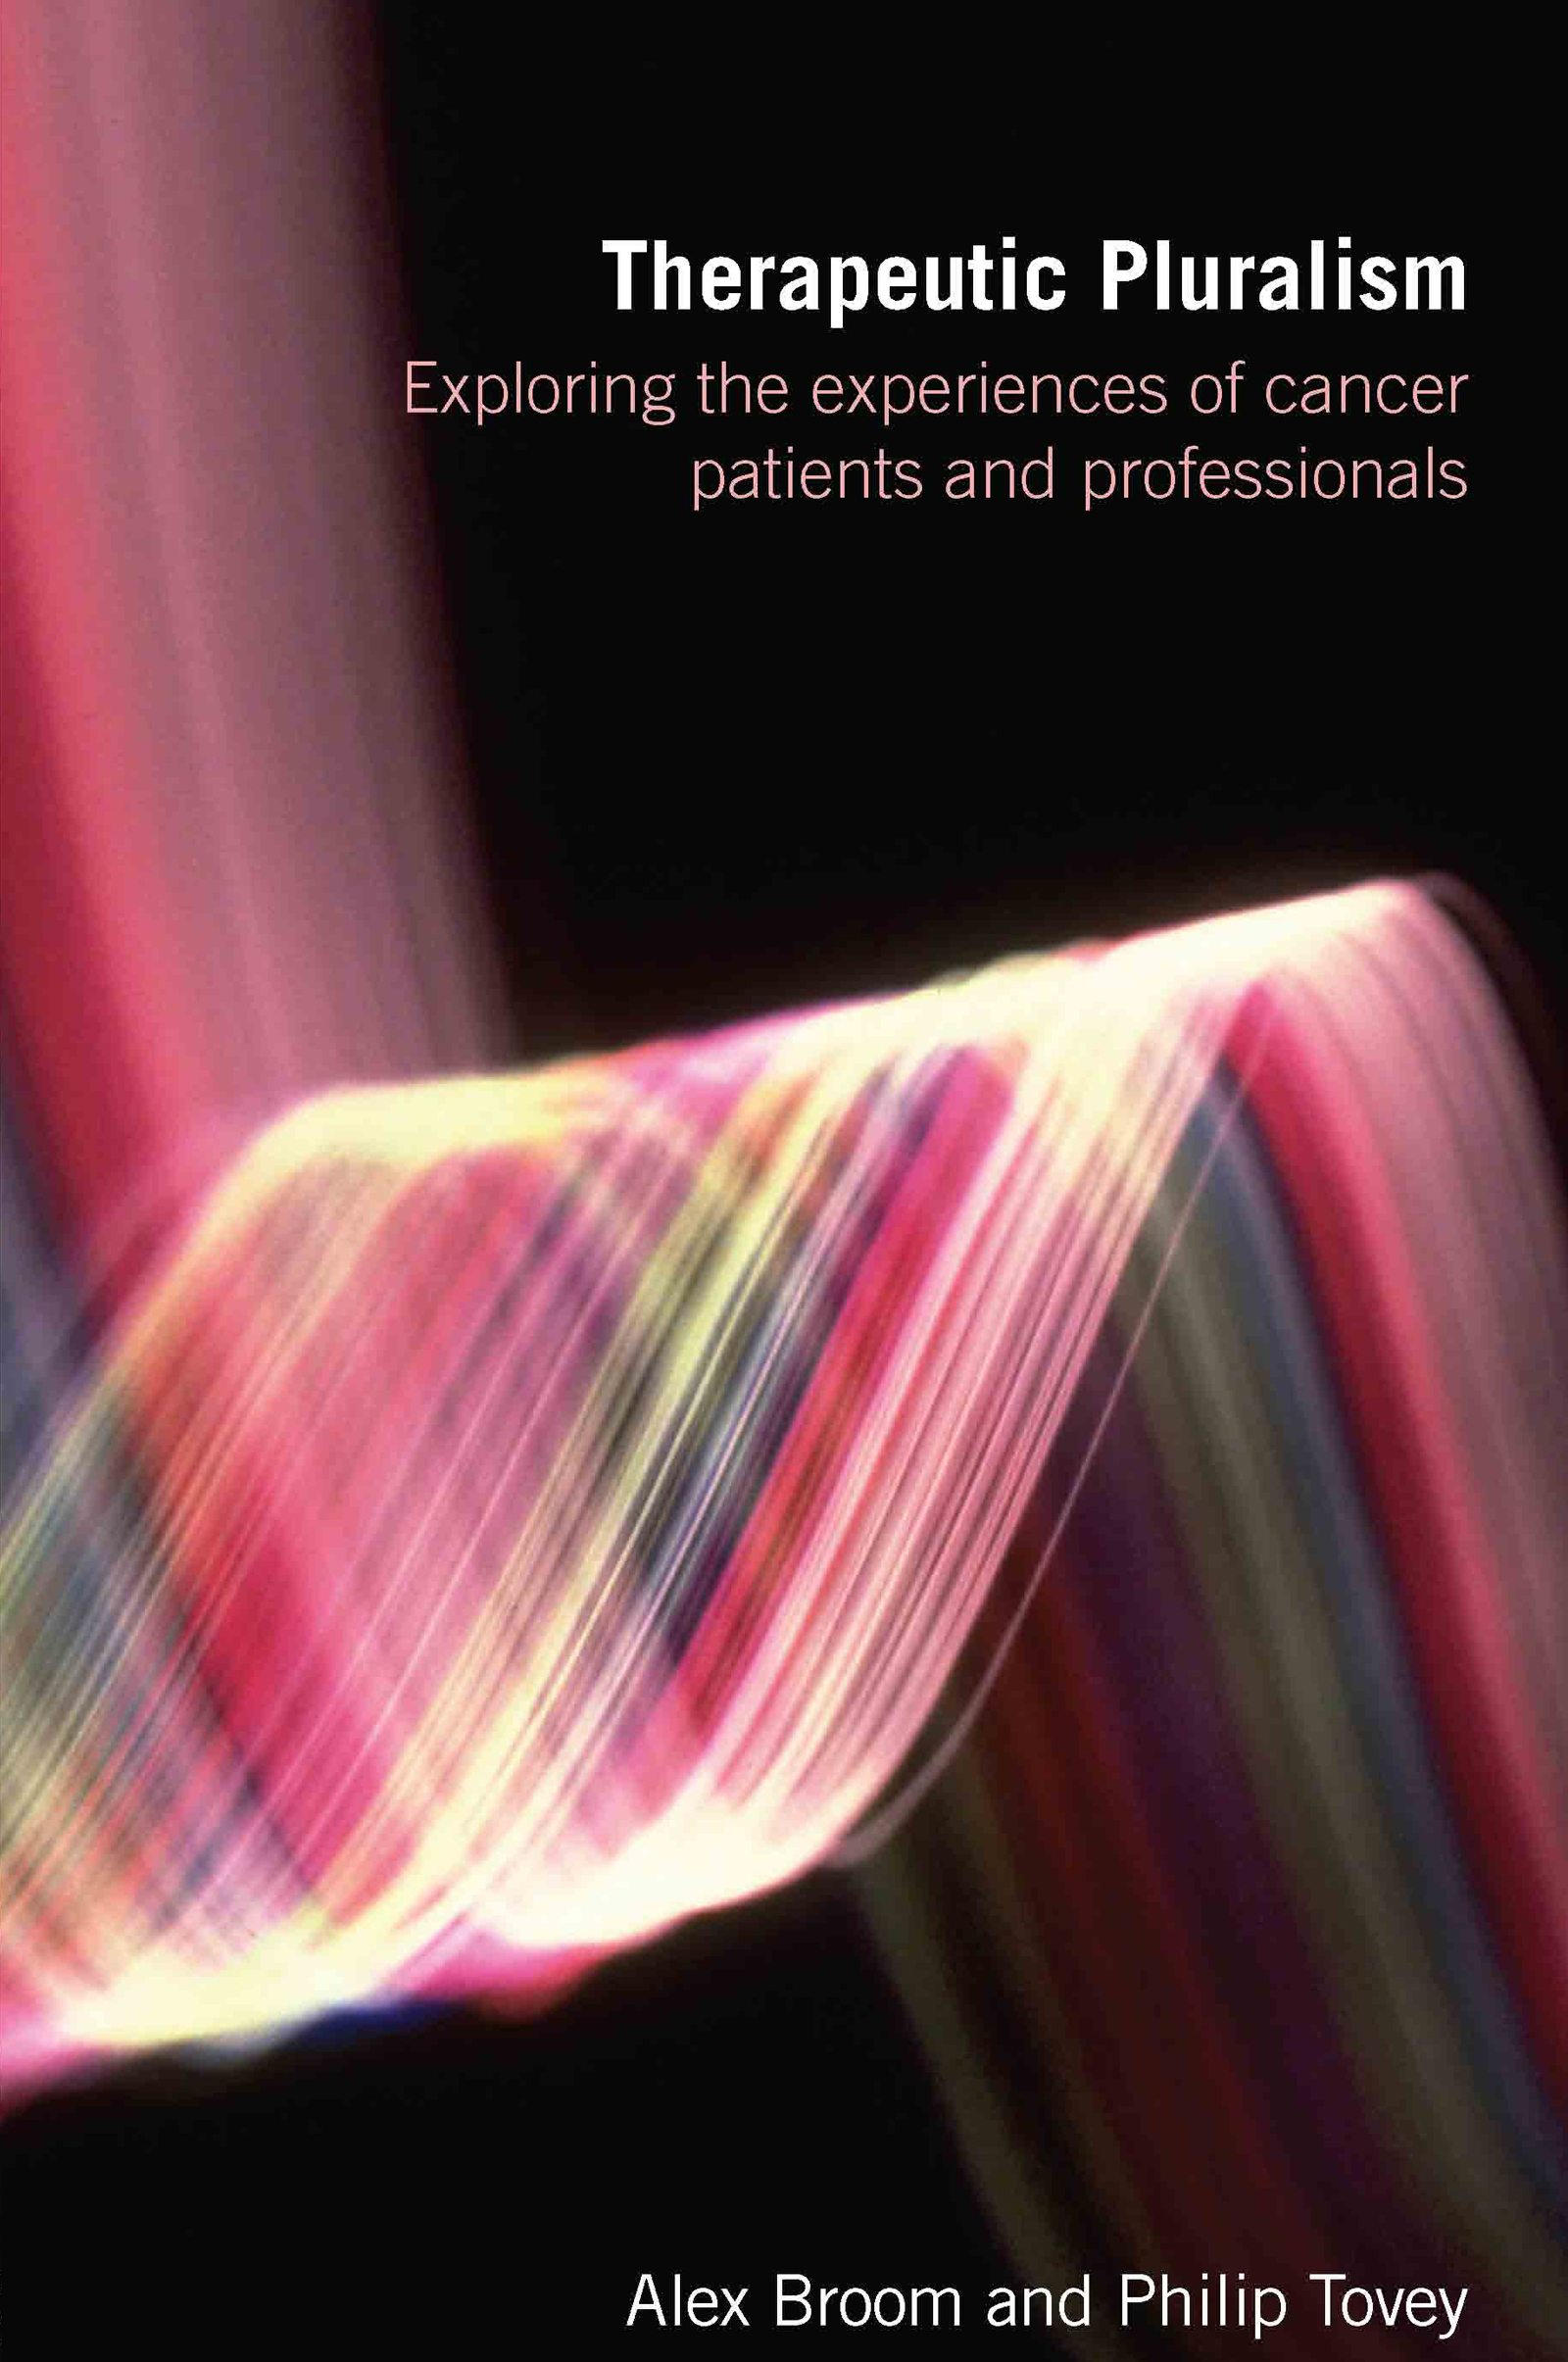 Therapeutic Pluralism: Exploring the Experiences of Cancer Patients and Professionals book cover